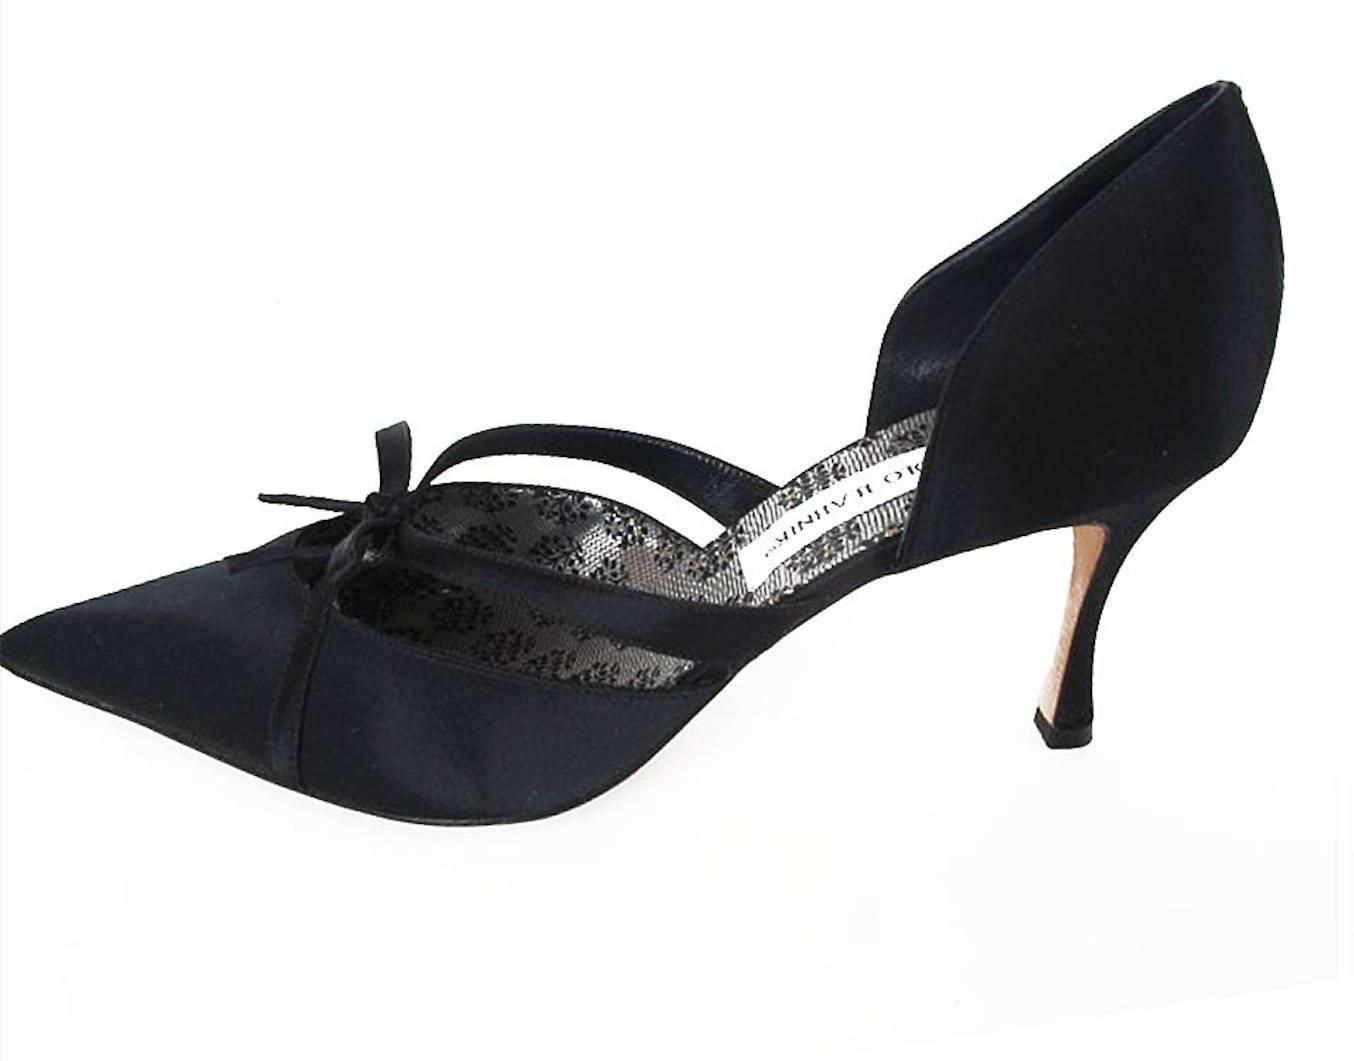 88cd412089a NEW Manolo Blahnik 1950 s Inspired Black Satin Evening Shoes 2 ...